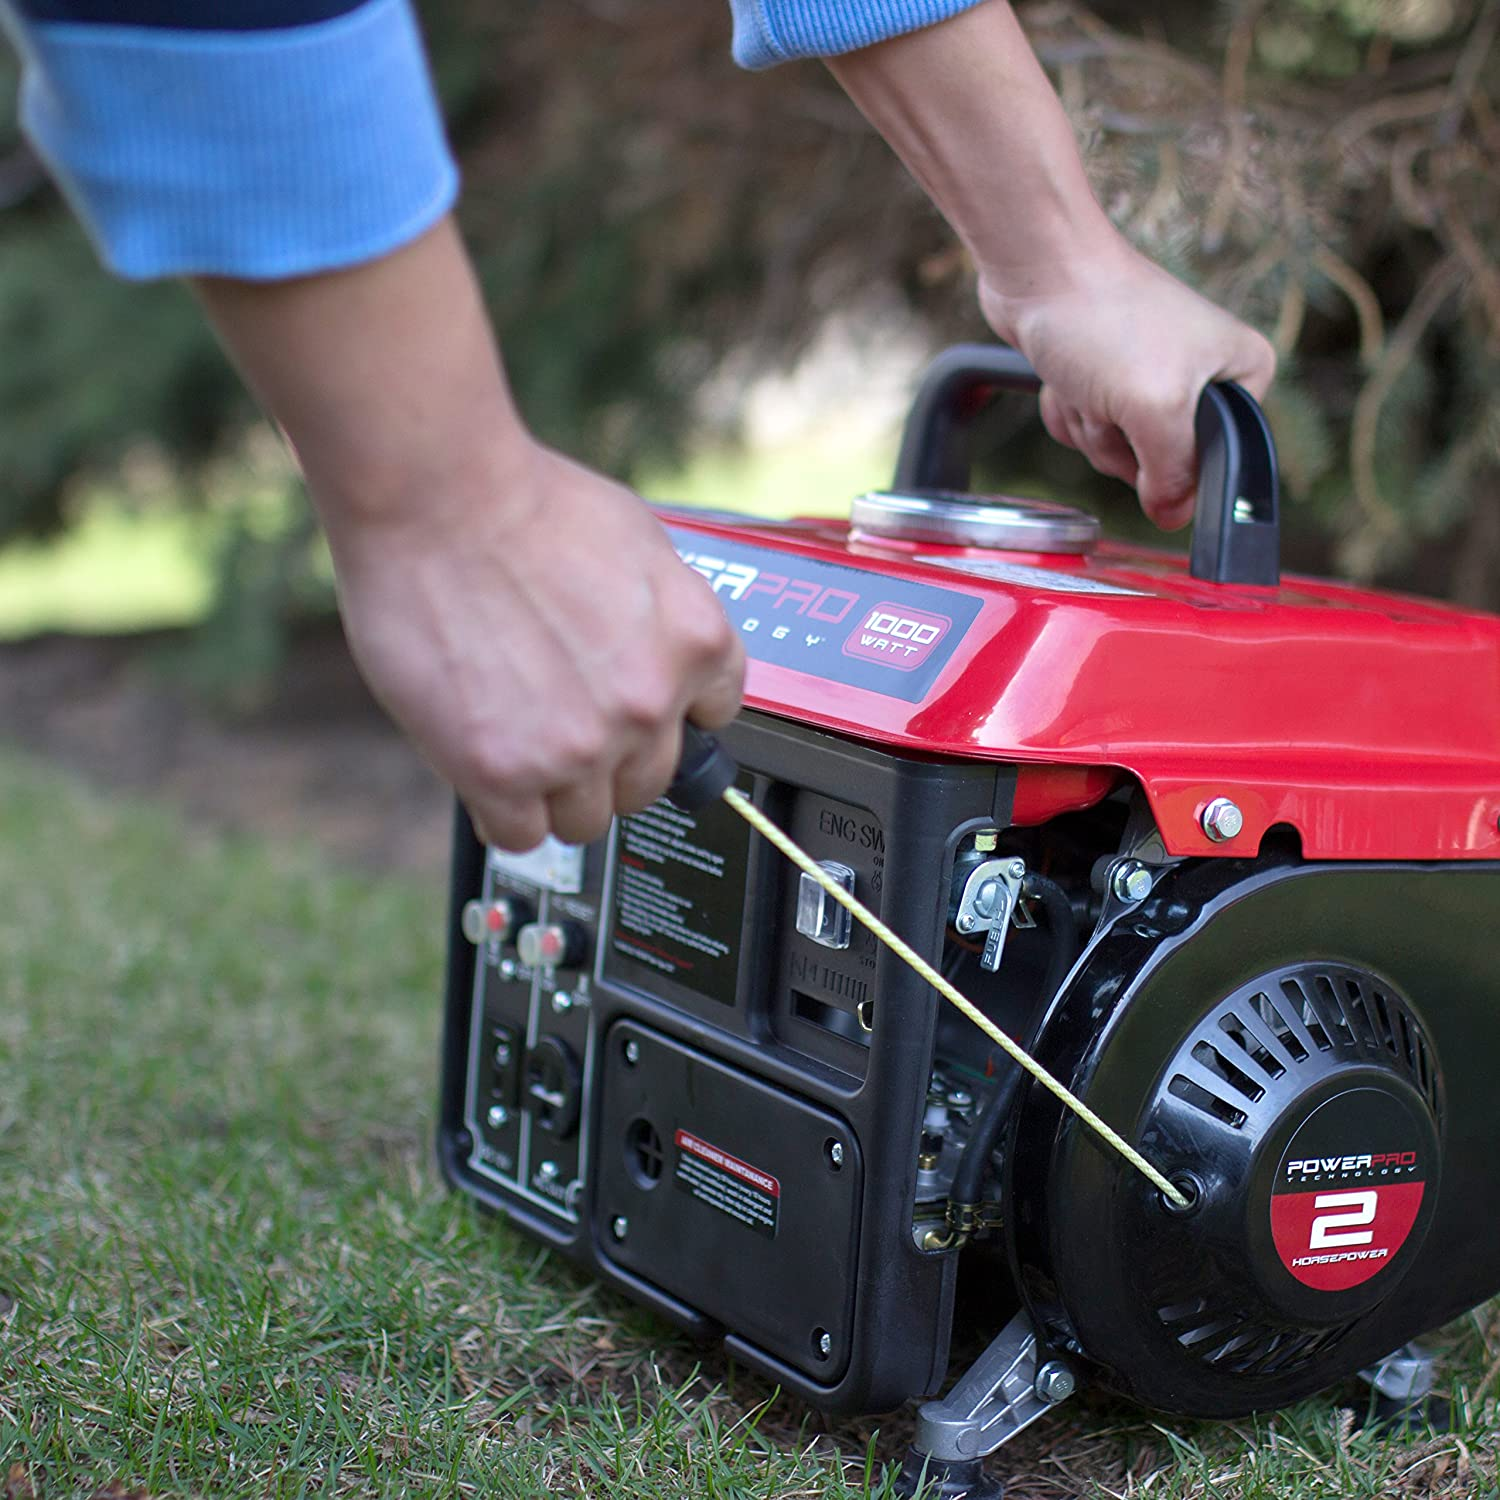 Never place the portable generator indoors when you are using it